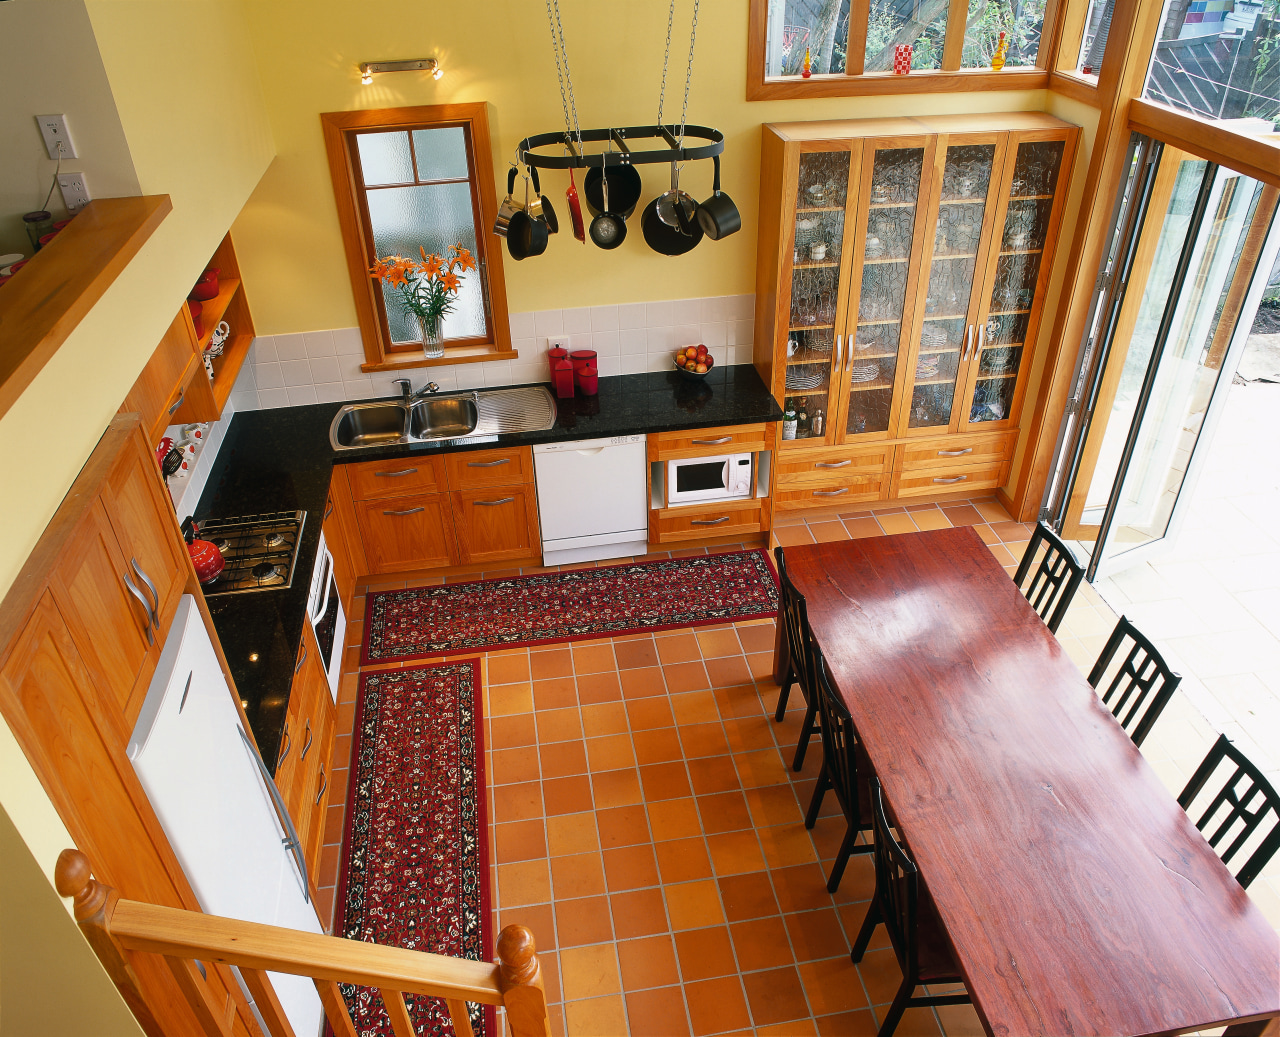 View looking down at kitchen with black granite dining room, floor, flooring, furniture, hardwood, home, house, interior design, kitchen, living room, property, real estate, room, stairs, table, wood, brown